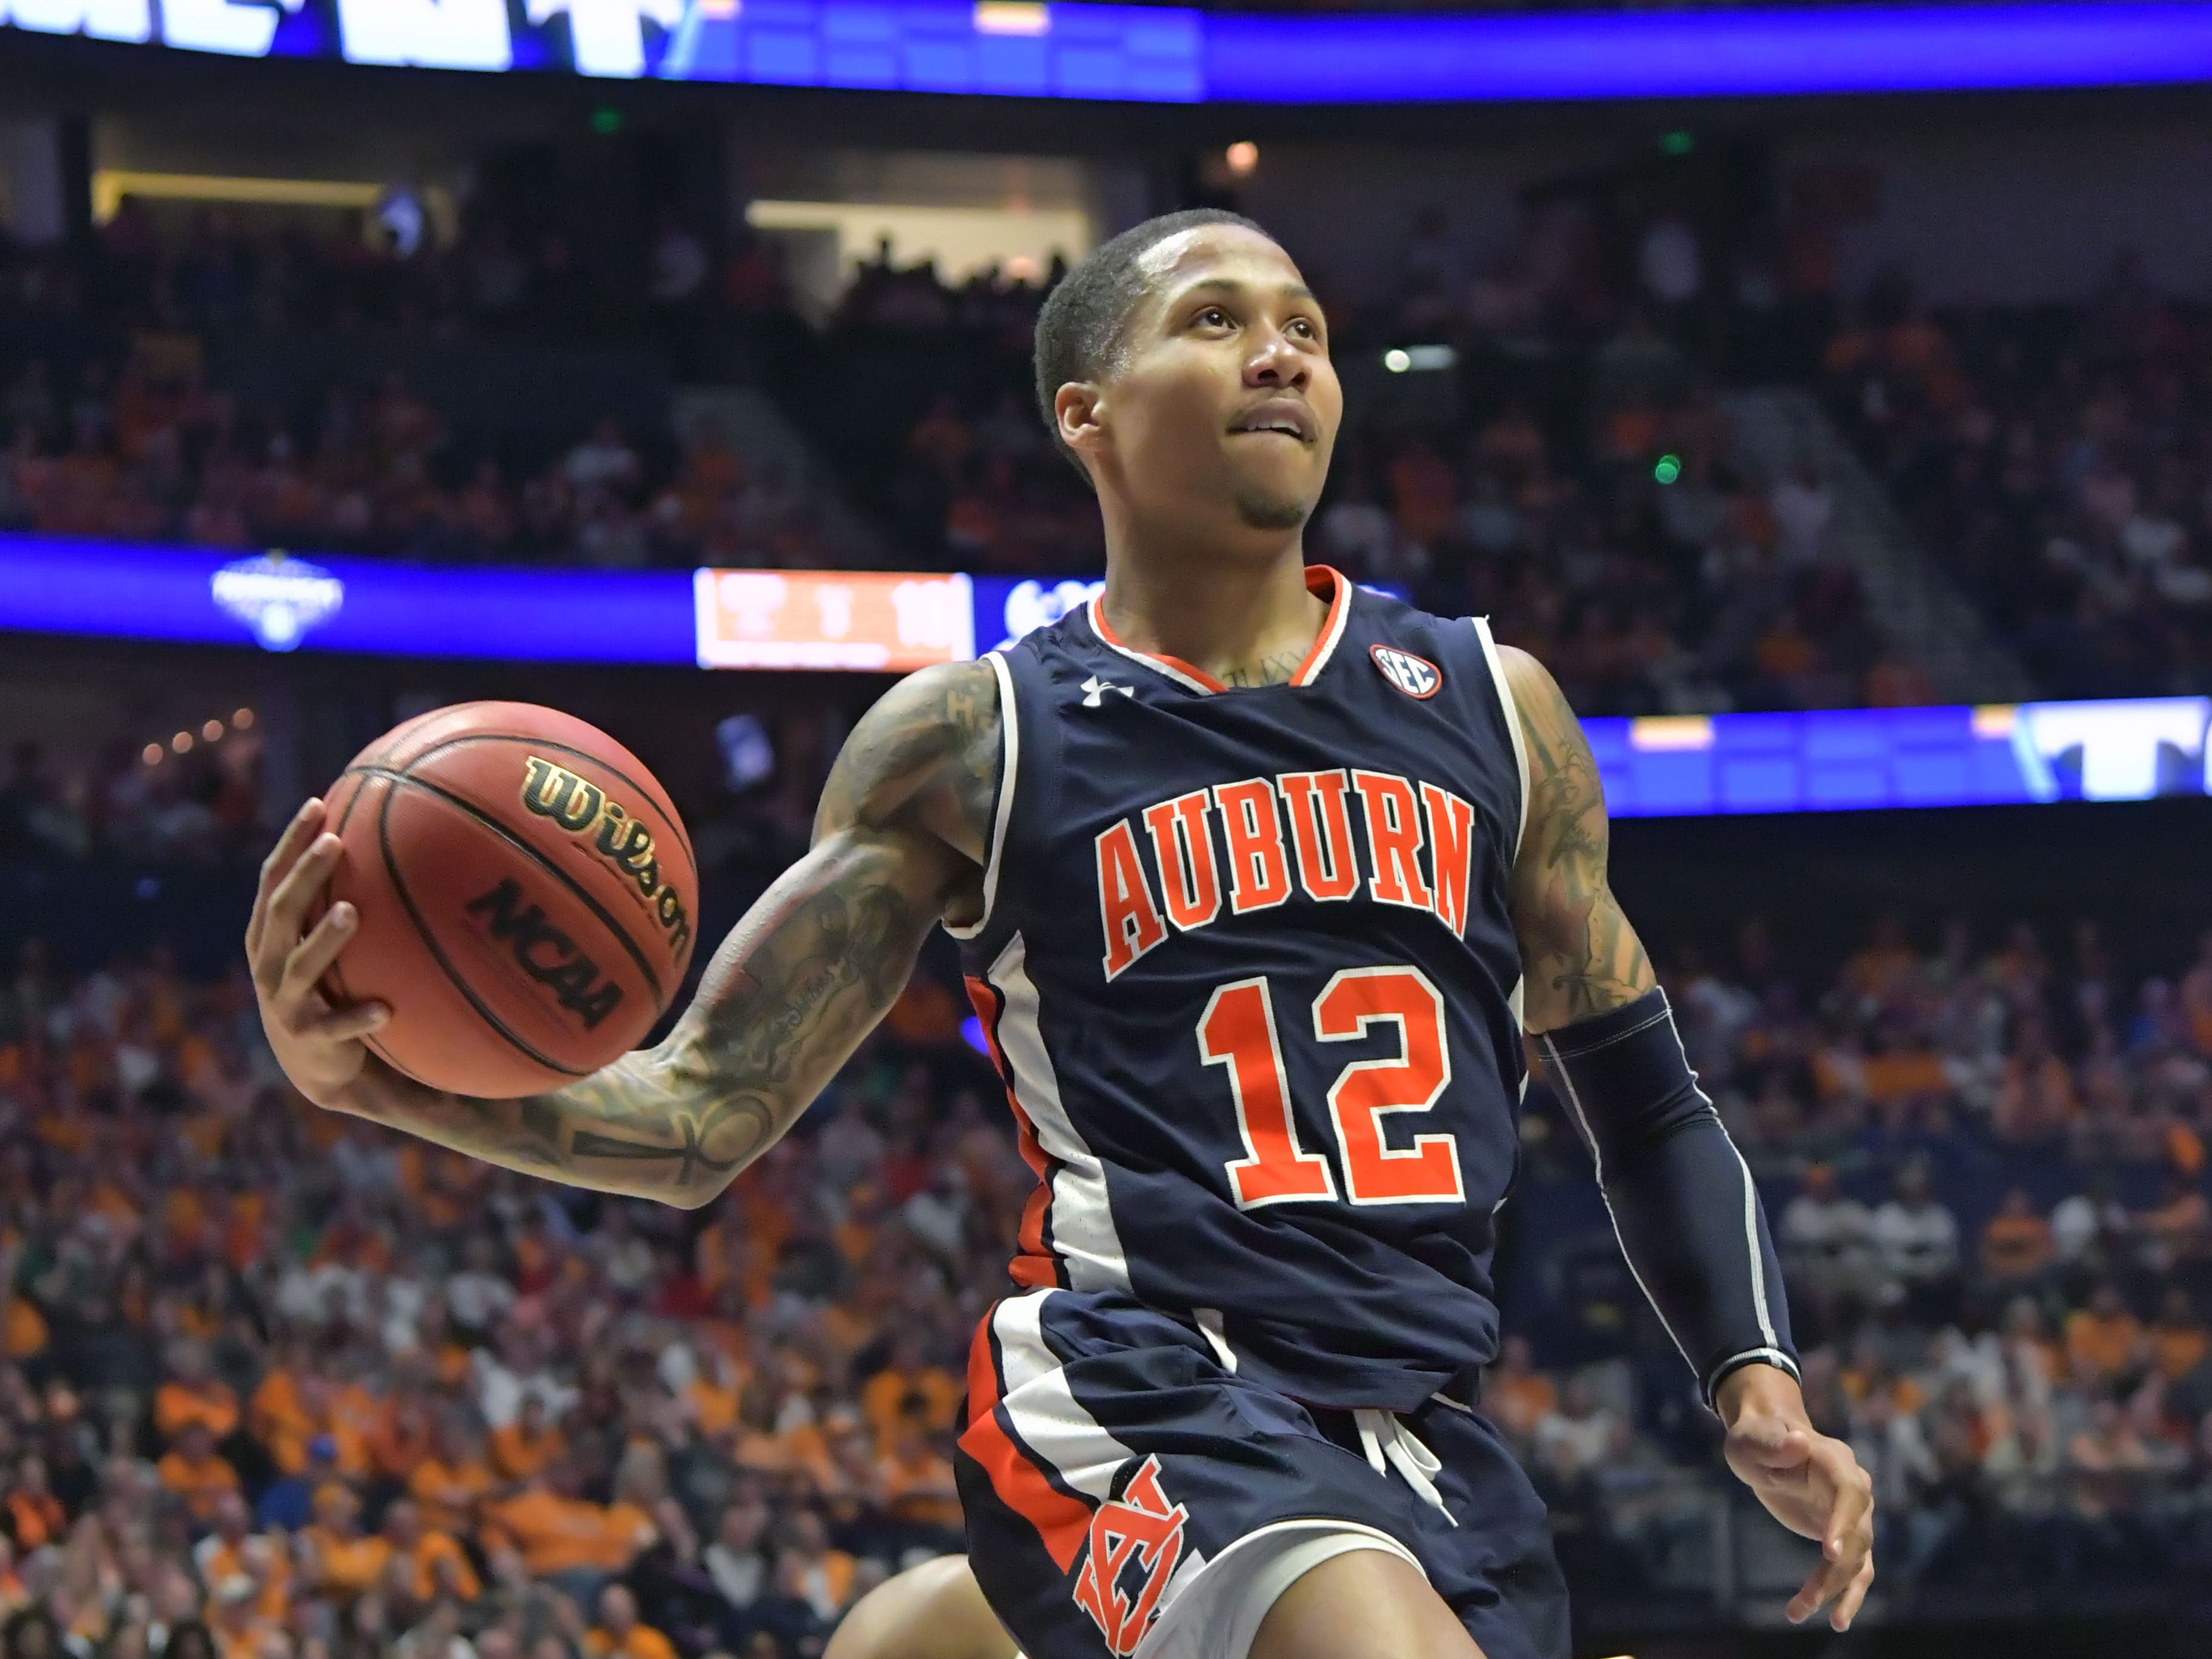 Mar 17, 2019; Nashville, TN, USA; Auburn Tigers guard J'Von McCormick (12) shoots against Tennessee Volunteers during the first half of the championship game in the SEC conference tournament at Bridgestone Arena. Mandatory Credit: Jim Brown-USA TODAY Sports